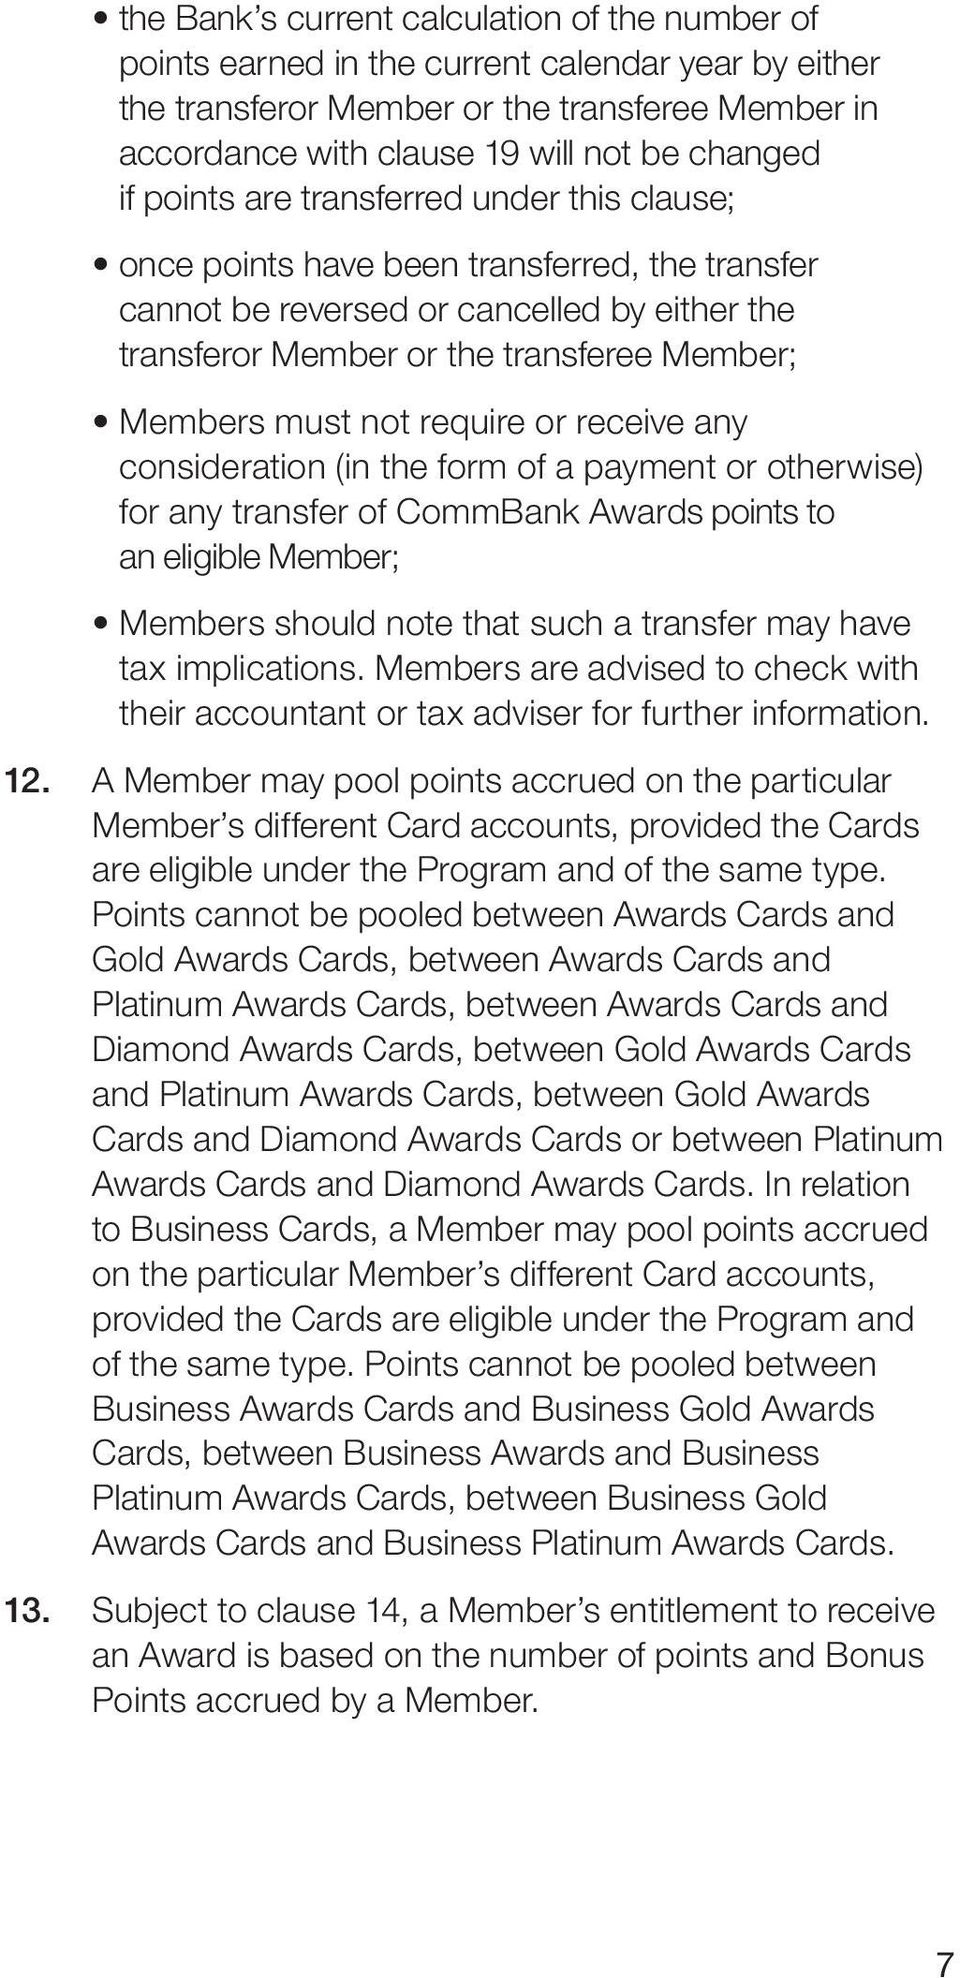 require or receive any consideration (in the form of a payment or otherwise) for any transfer of CommBank Awards points to an eligible Member; Members should note that such a transfer may have tax